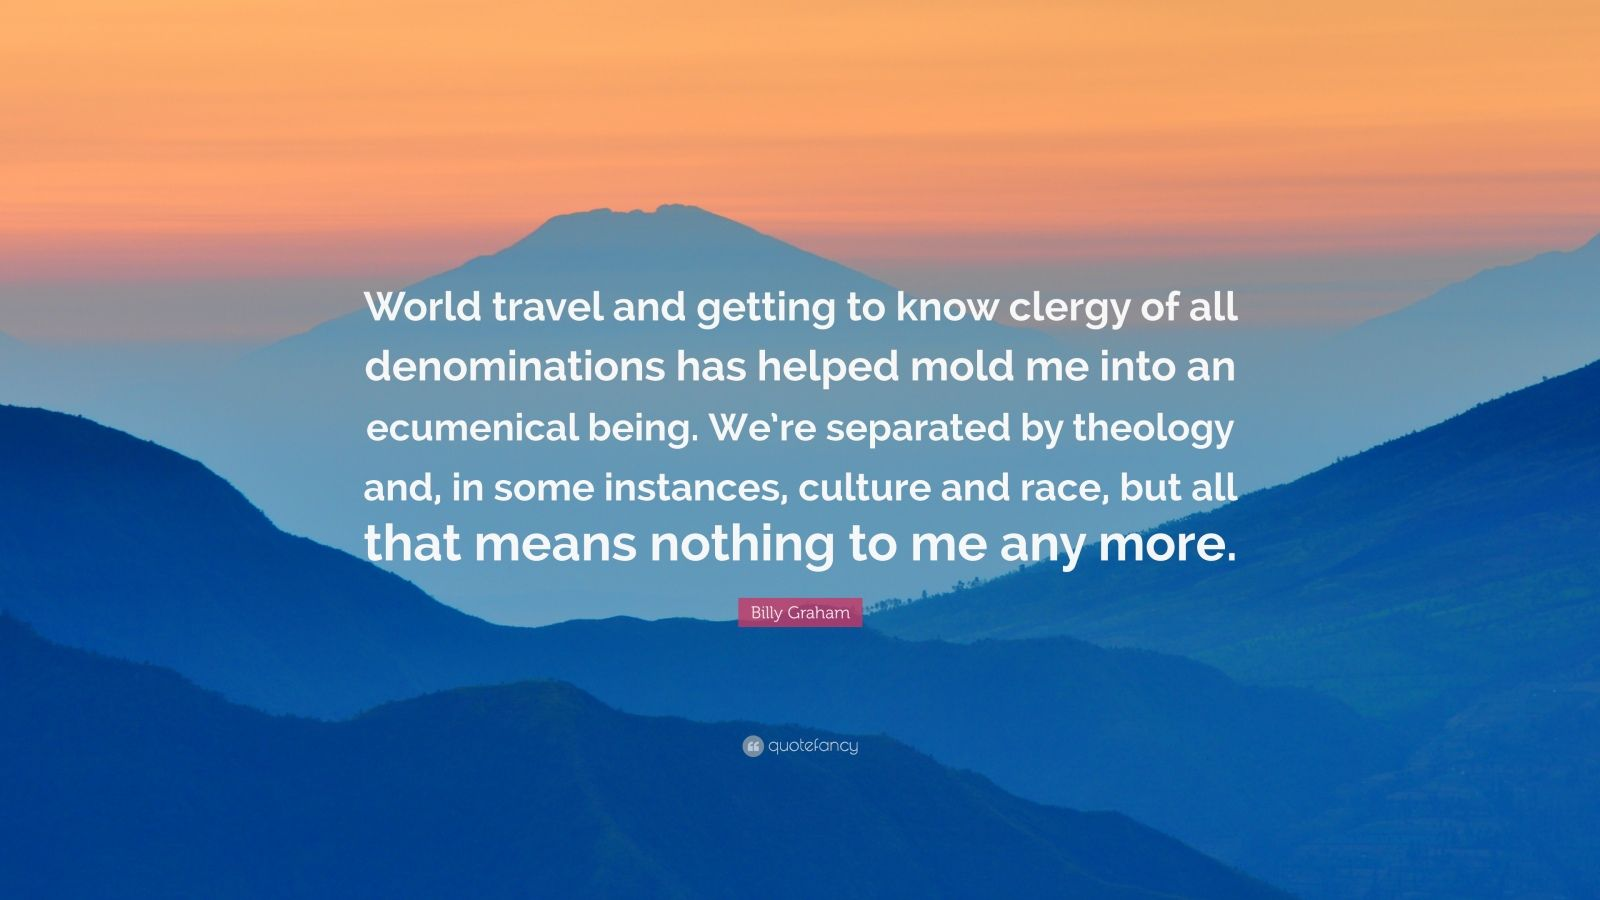 """Billy Graham Quote: """"World travel and getting to know clergy of all denominations has helped mold me into an ecumenical being. We're separated by theology and, in some instances, culture and race, but all that means nothing to me any more."""""""